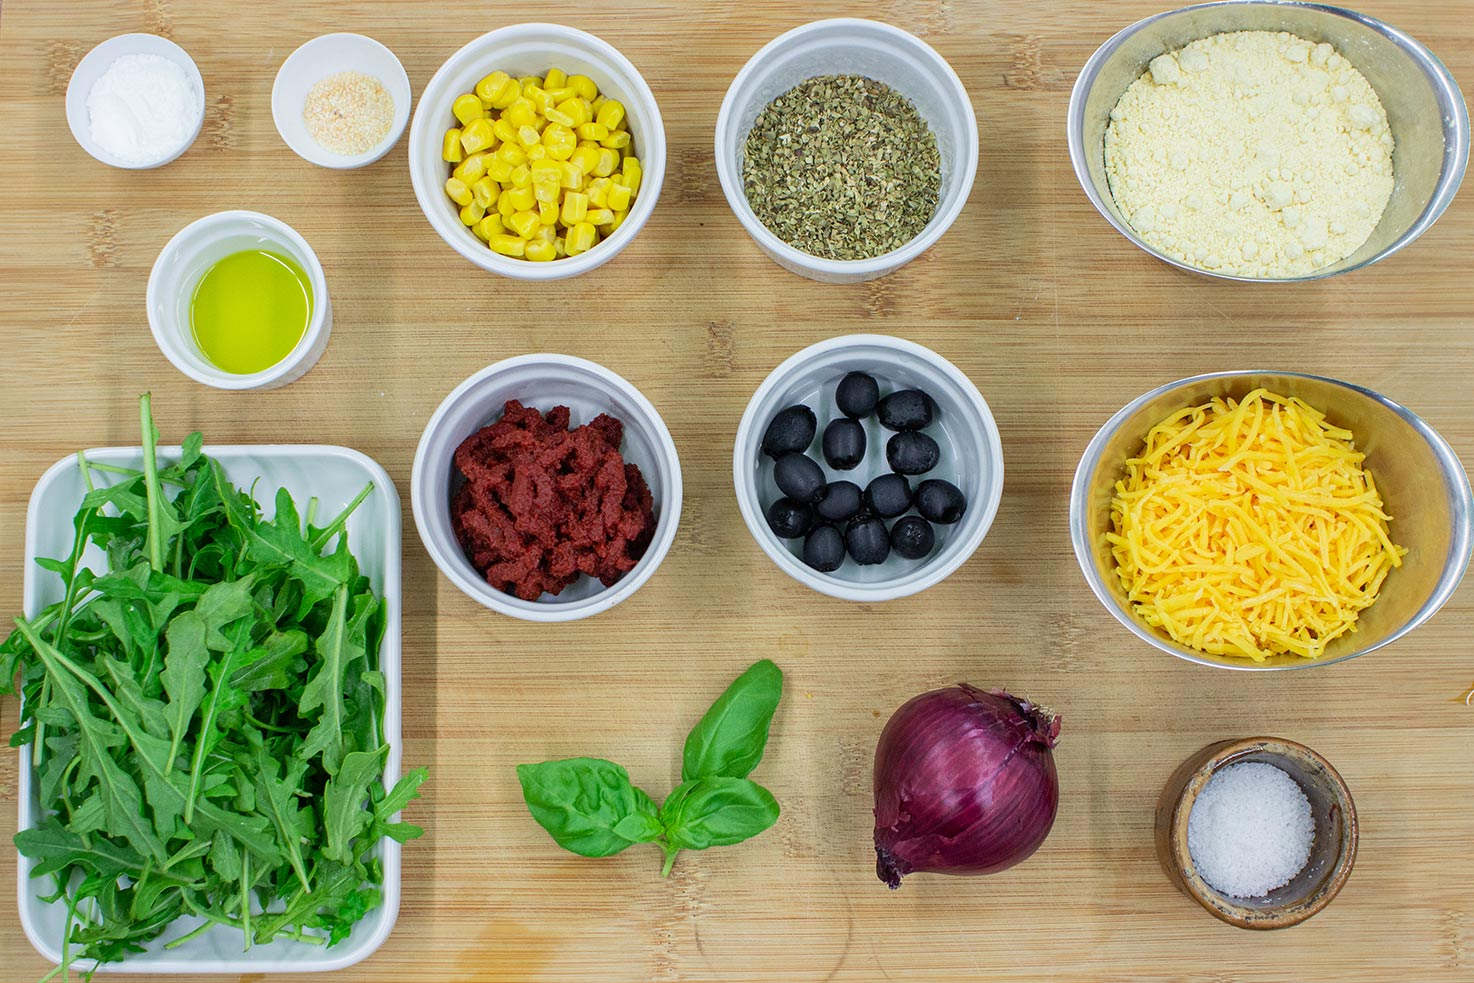 The Socca Pizza ingredients are on the chopping board - chickpea flour, garlic powder, baking powder, tomato paste, dried oregano, red onion, cheddar cheese, sweetcorn, olives, arugula, basil #sweetcorn #olive oil | hurrythefoodup.com